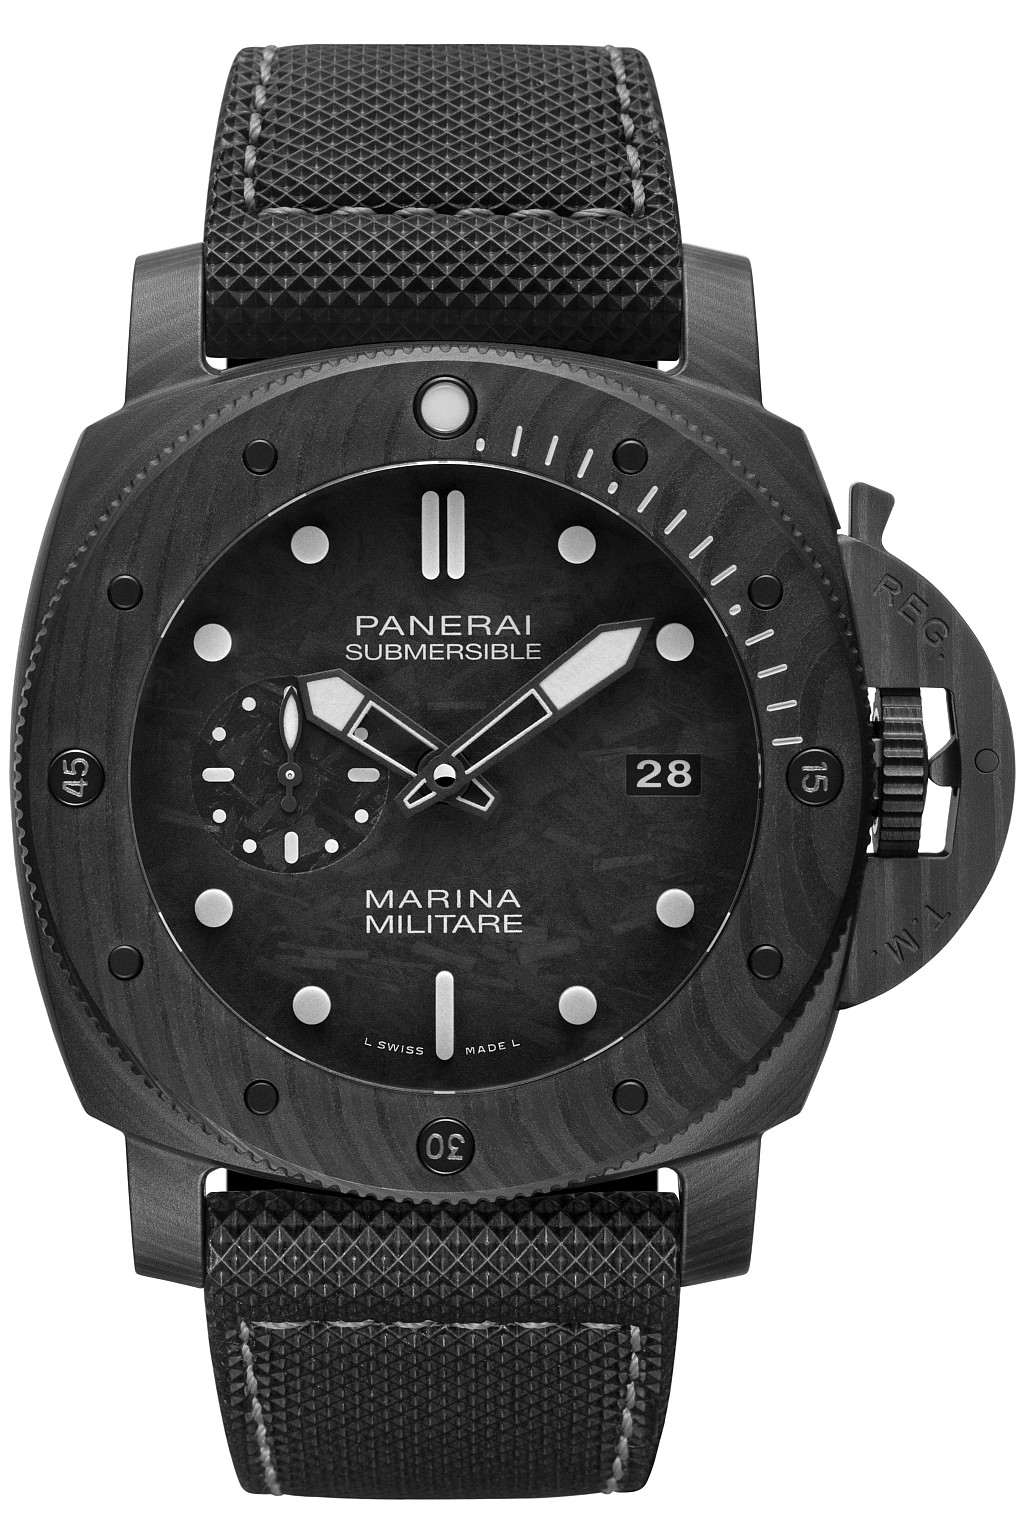 沛納海 Submersible Marina Militare Carbotech 碳纖維專業潛水腕錶 ─ 47毫米 PAM979